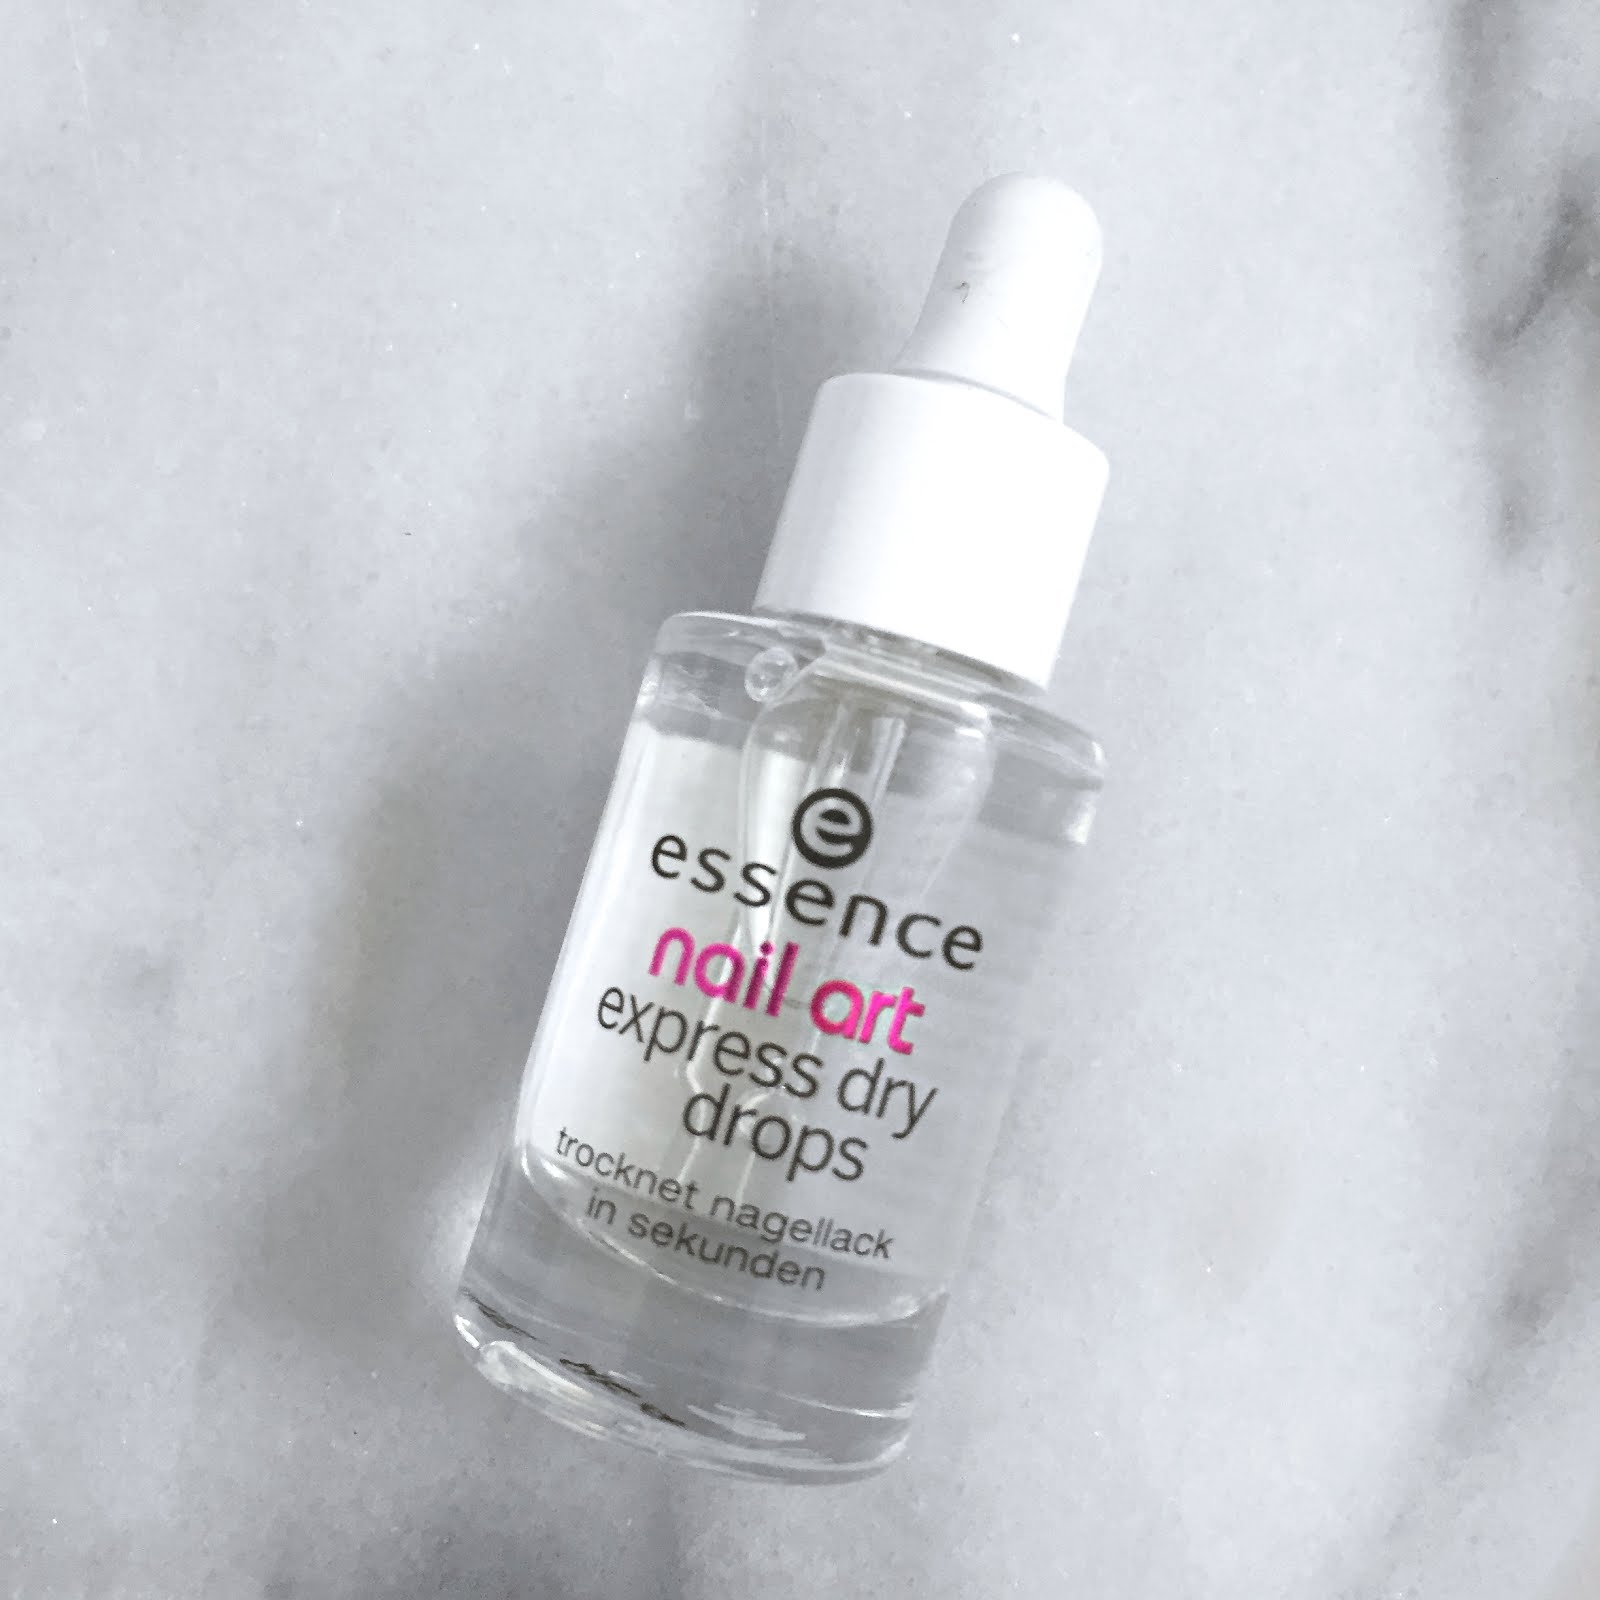 Jessleonh My Nail Polish Breakthrough Essence Express Dry Drops